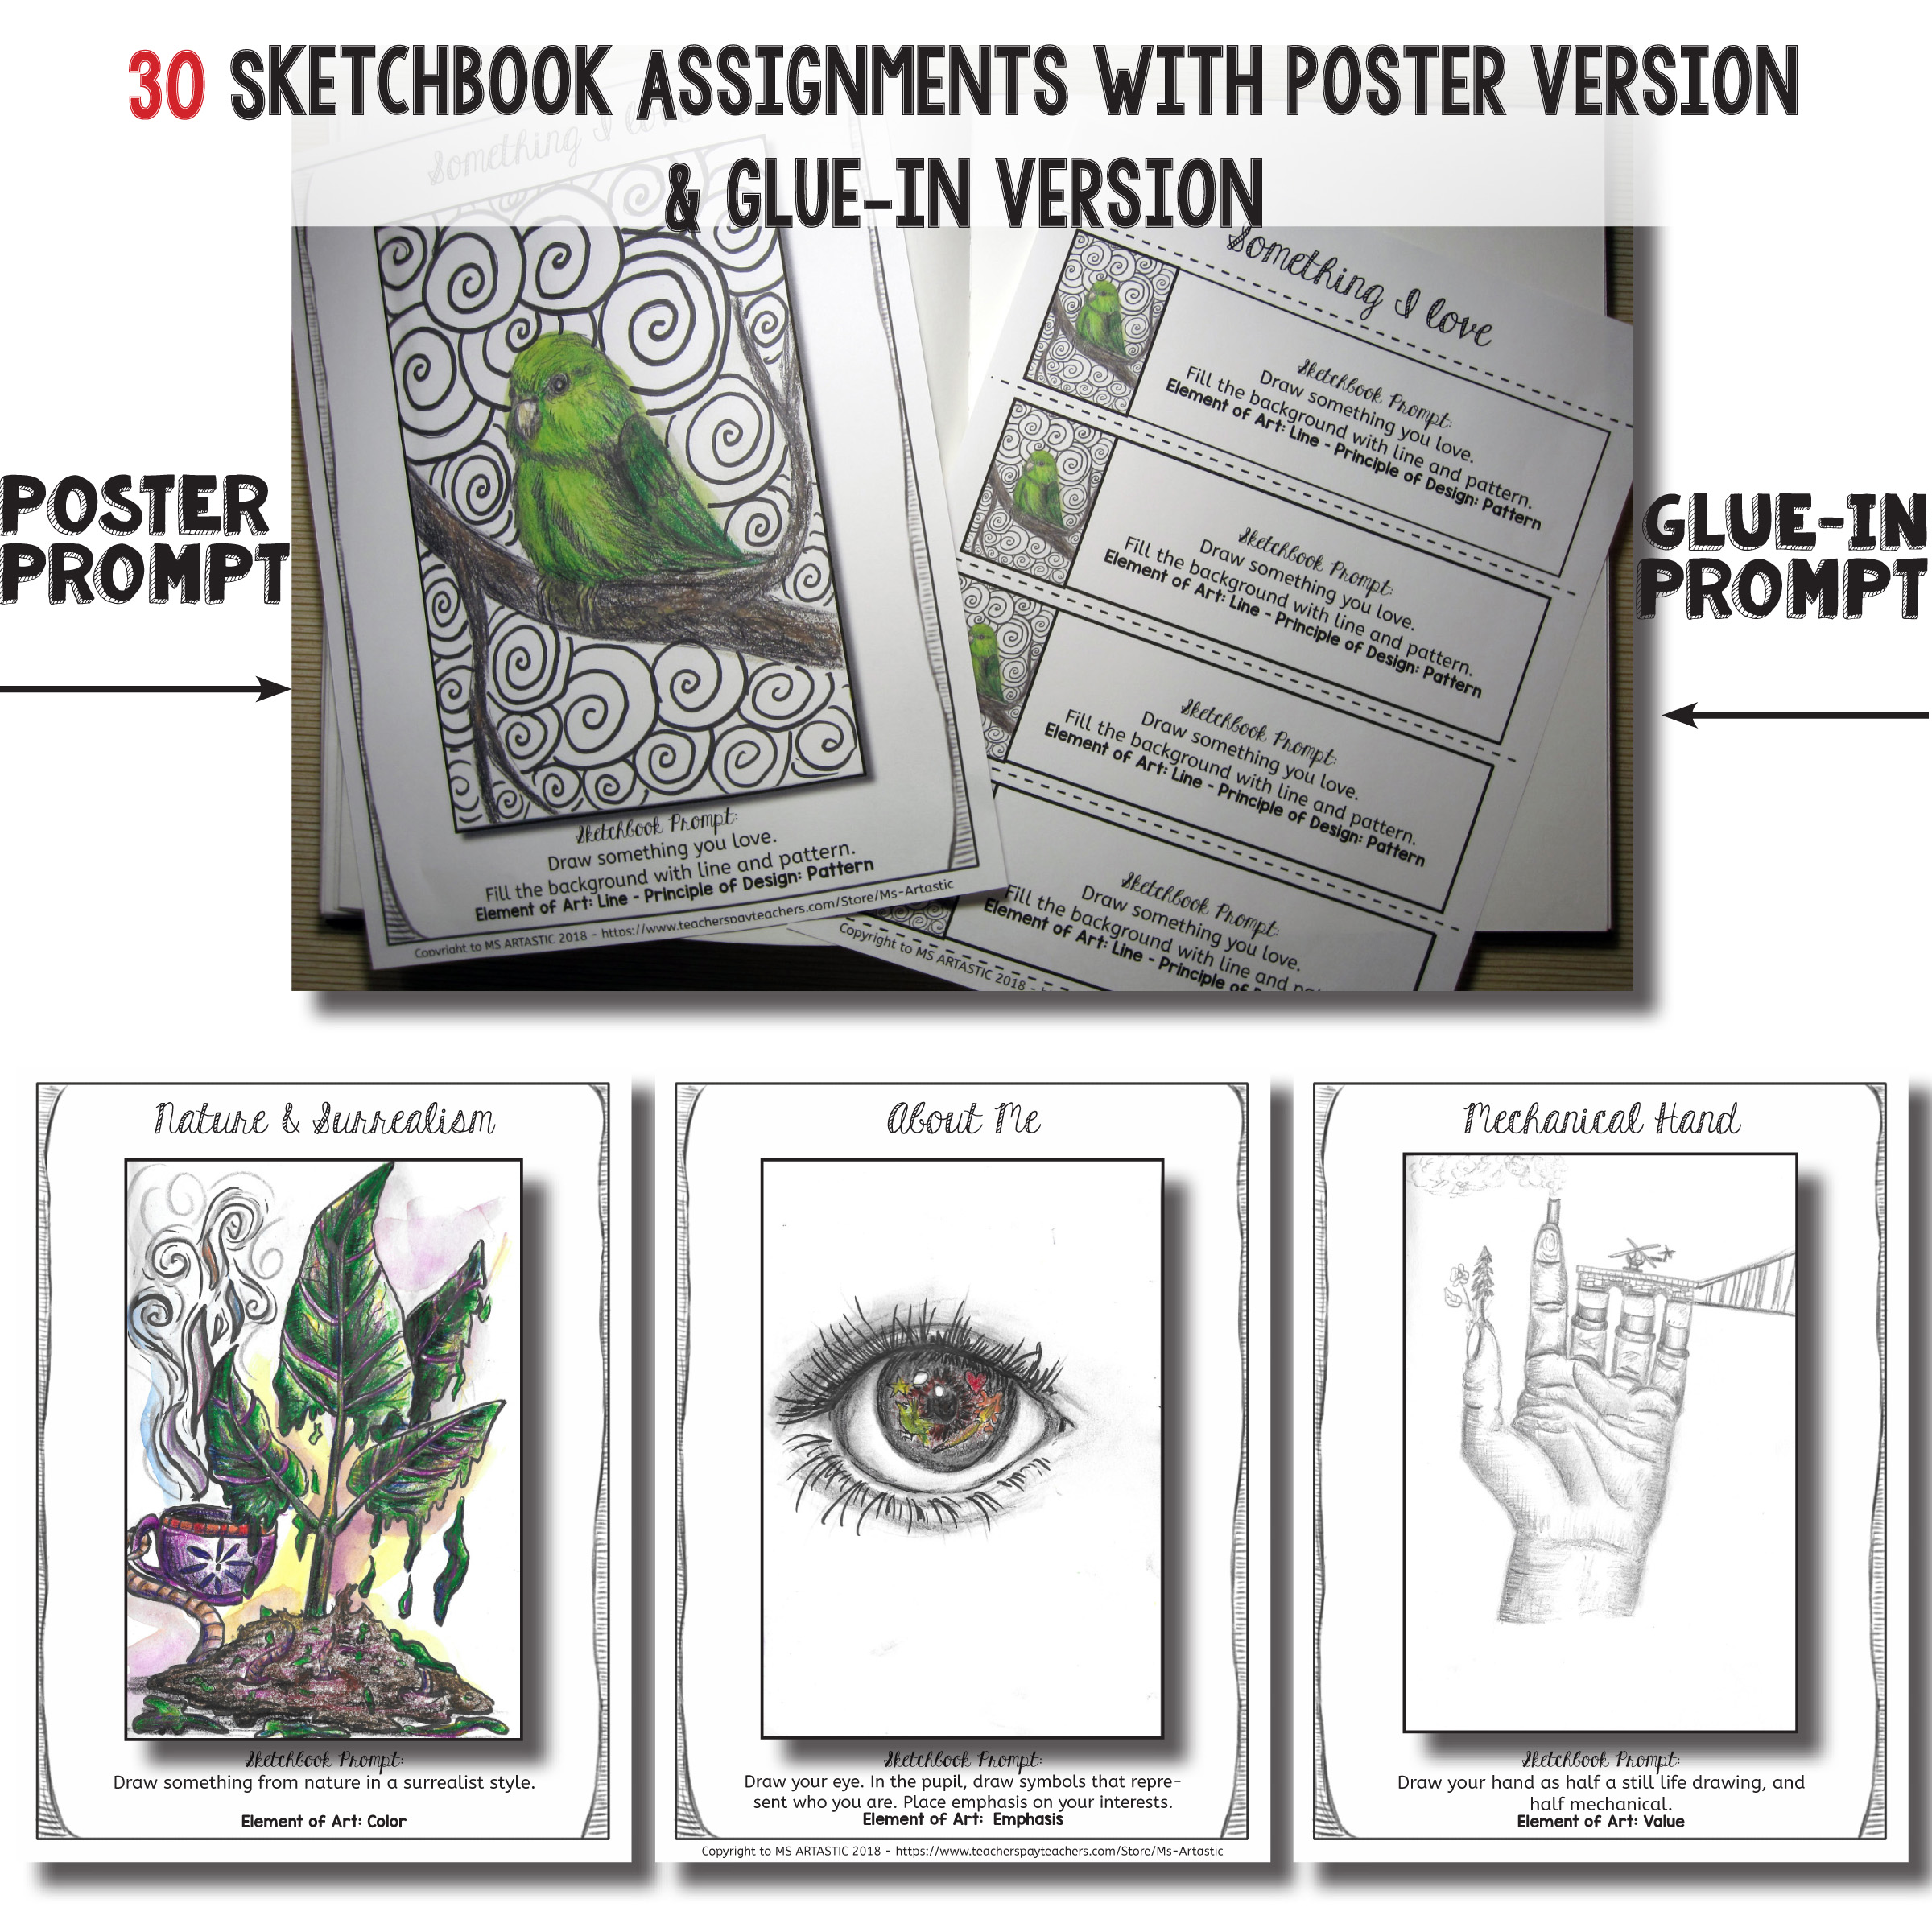 If you're able to set a routine for working on sketchbook assignments, set up expectations of experimentation and quality by using examples of completed sketchbook prompts, and have a unit plan with an aim of what you'll cover, then you should be able to implement sketchbooks into your classroom in a meaningful way.